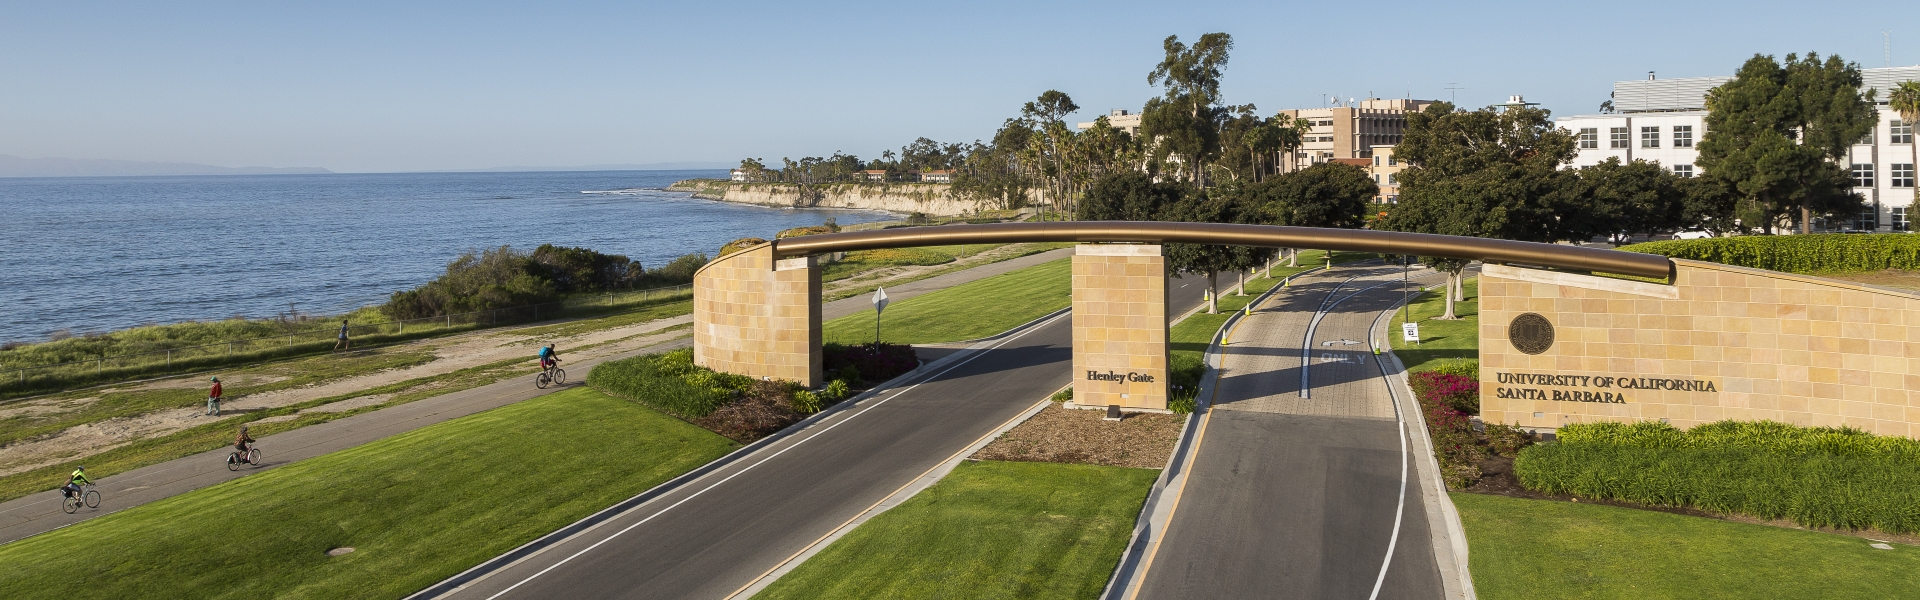 Aerial view of gate to UCSB campus